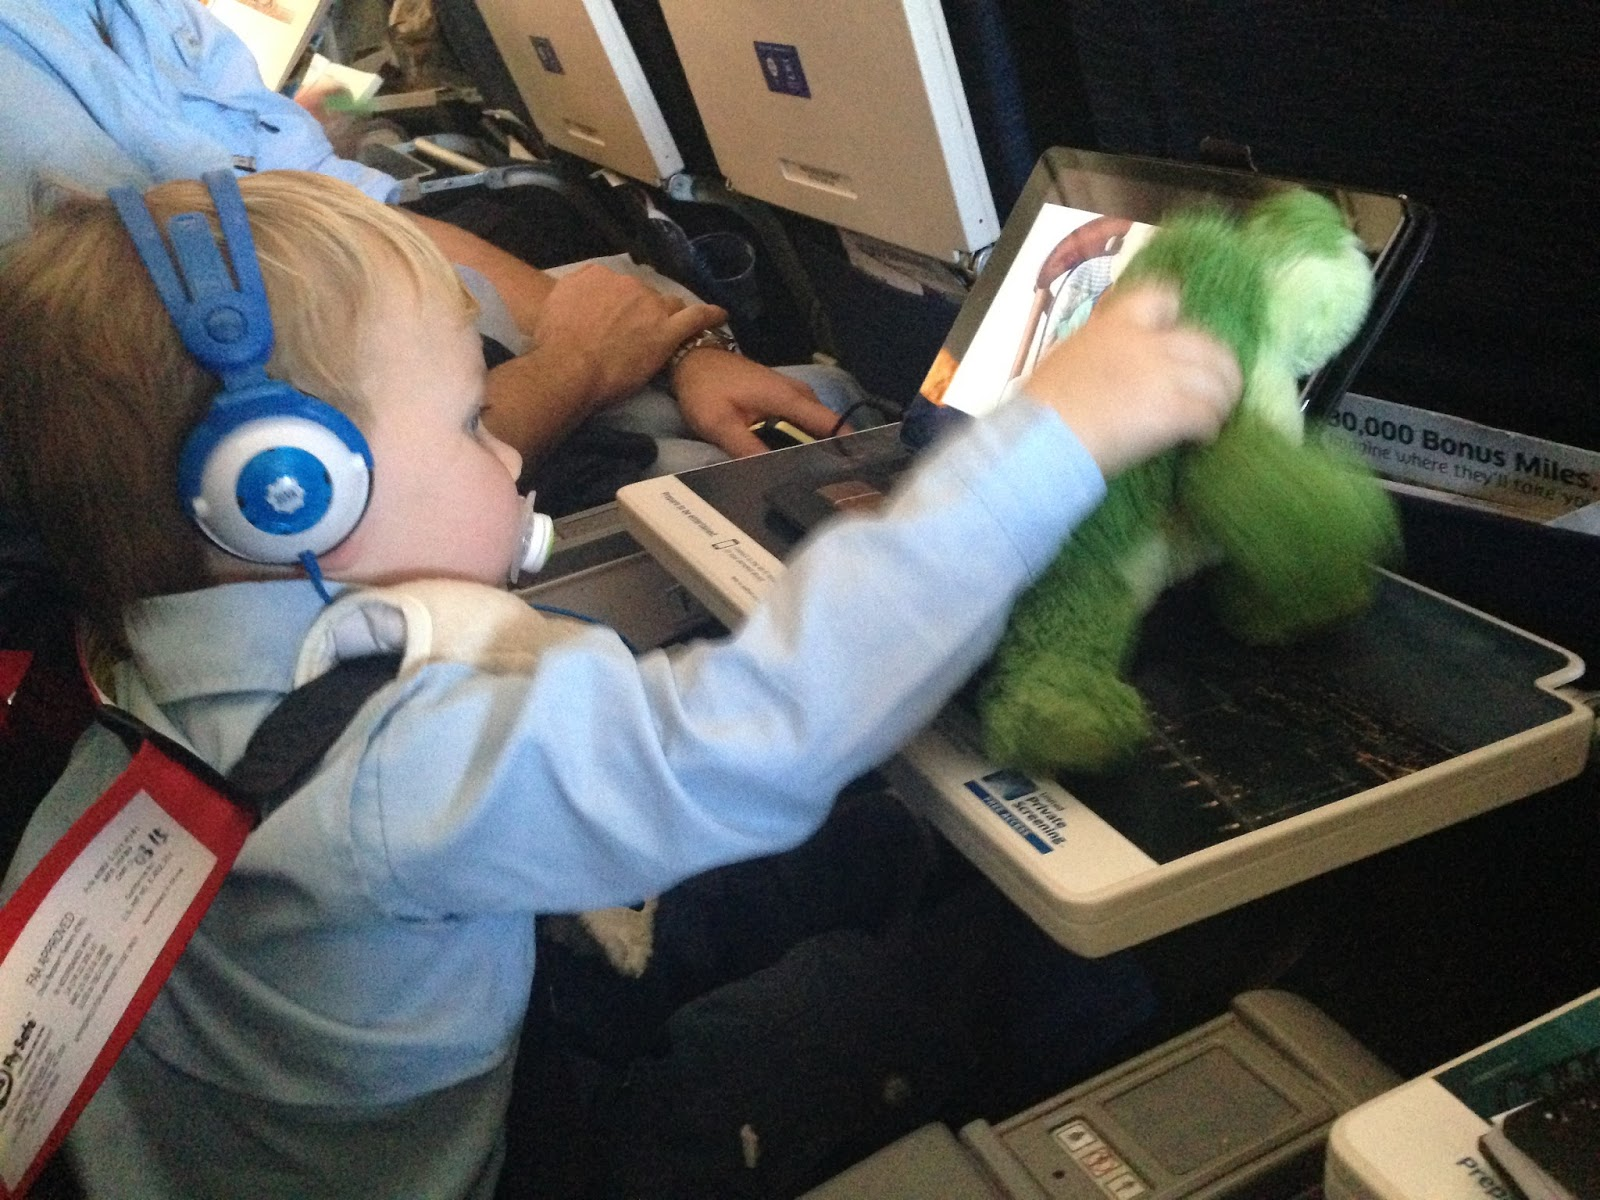 Wife Without Borders: Best Items for Flying with Toddlers